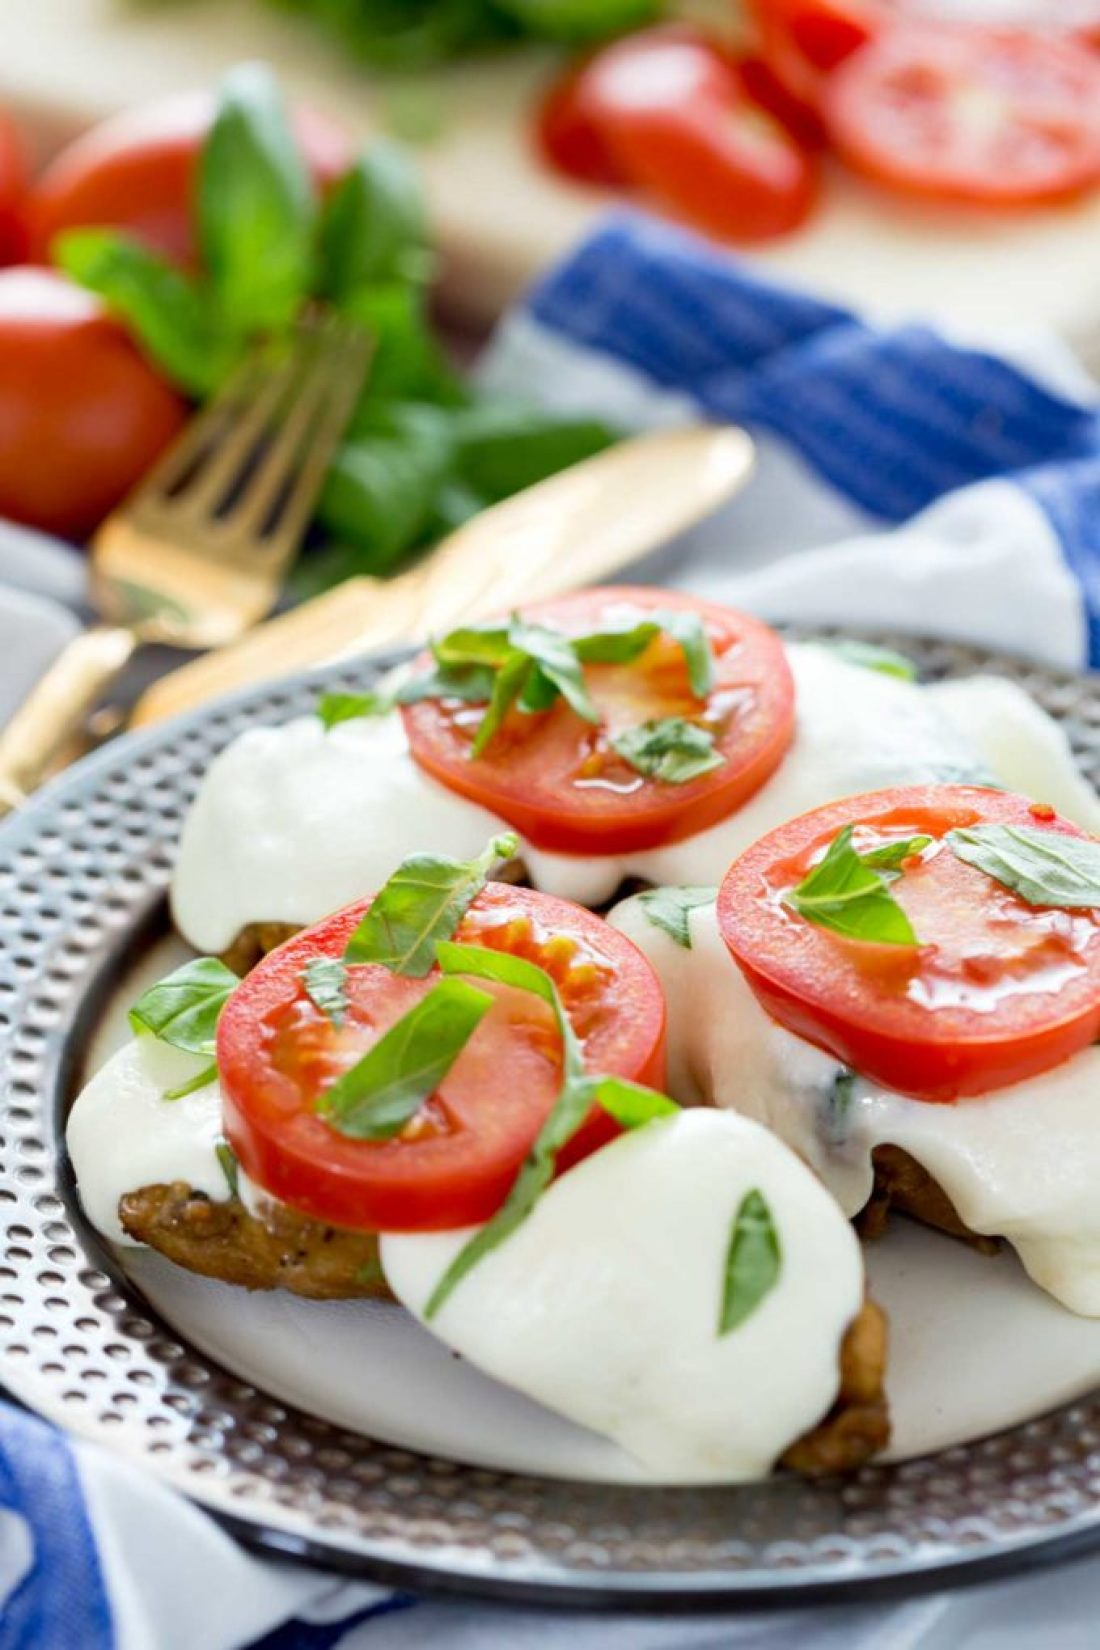 Balsamic Caprese Chicken is creamy, delicious, and yummy.